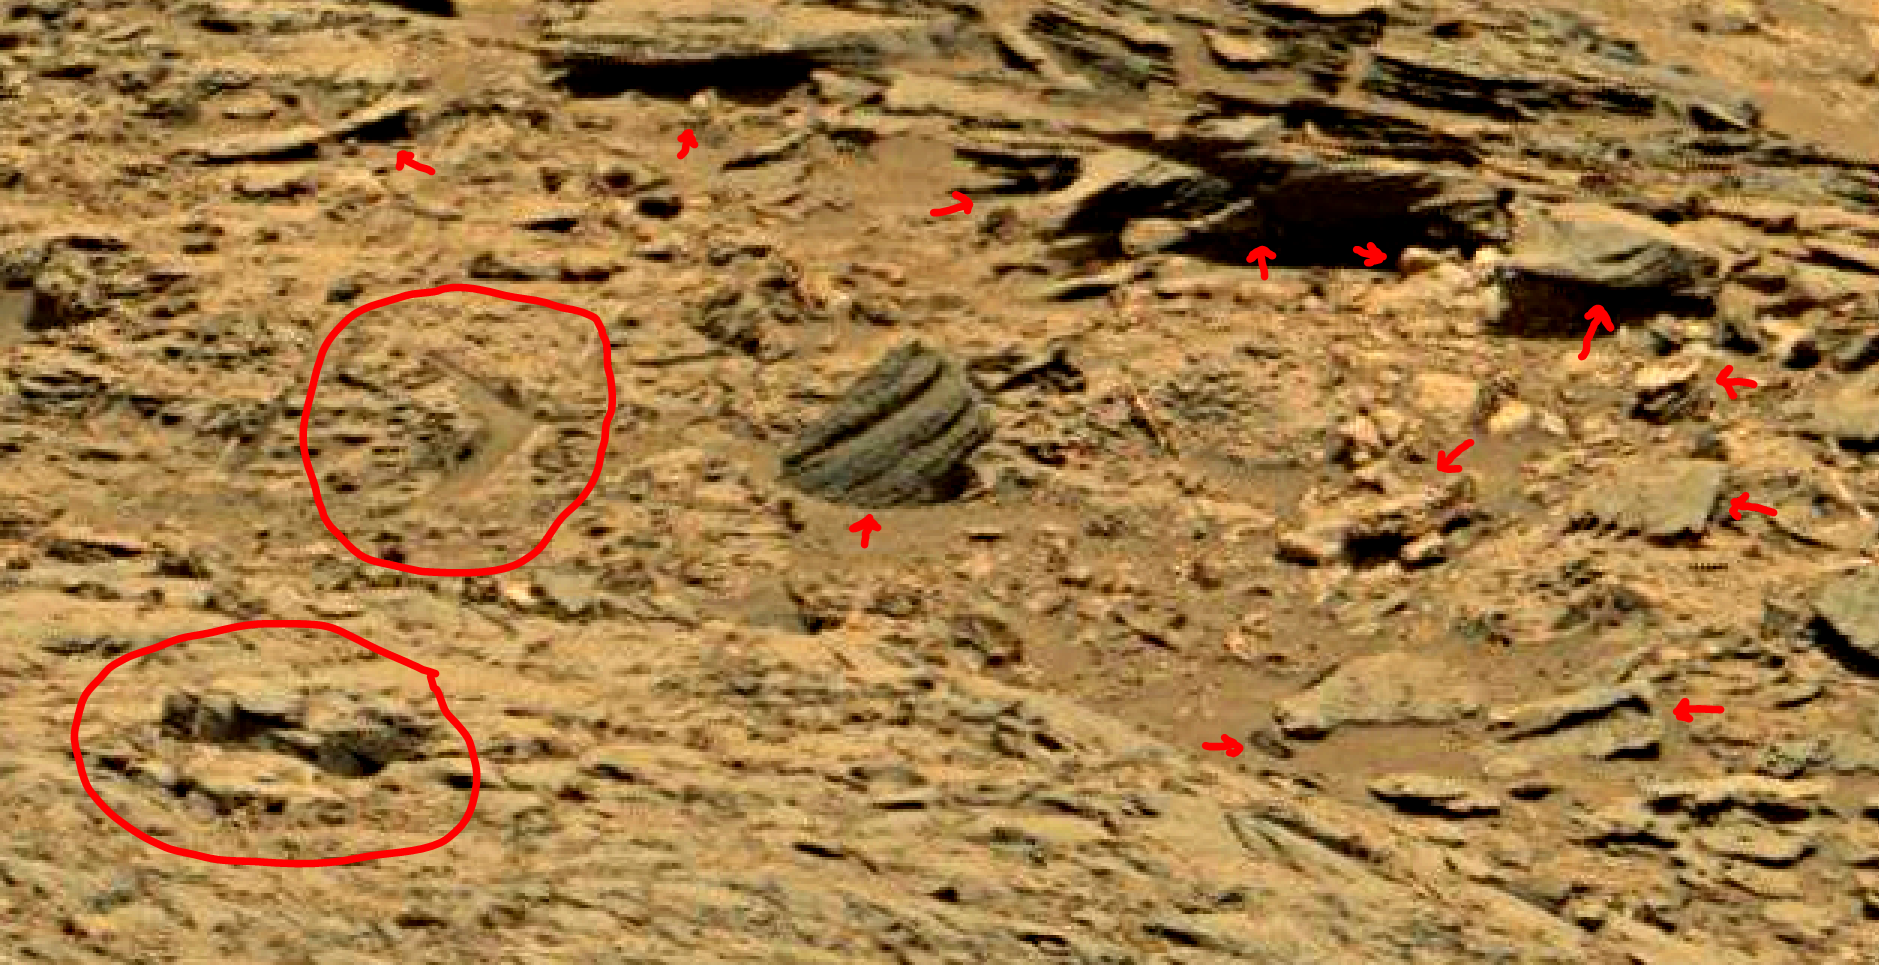 mars sol 1353 anomaly-artifacts 70 was life on mars